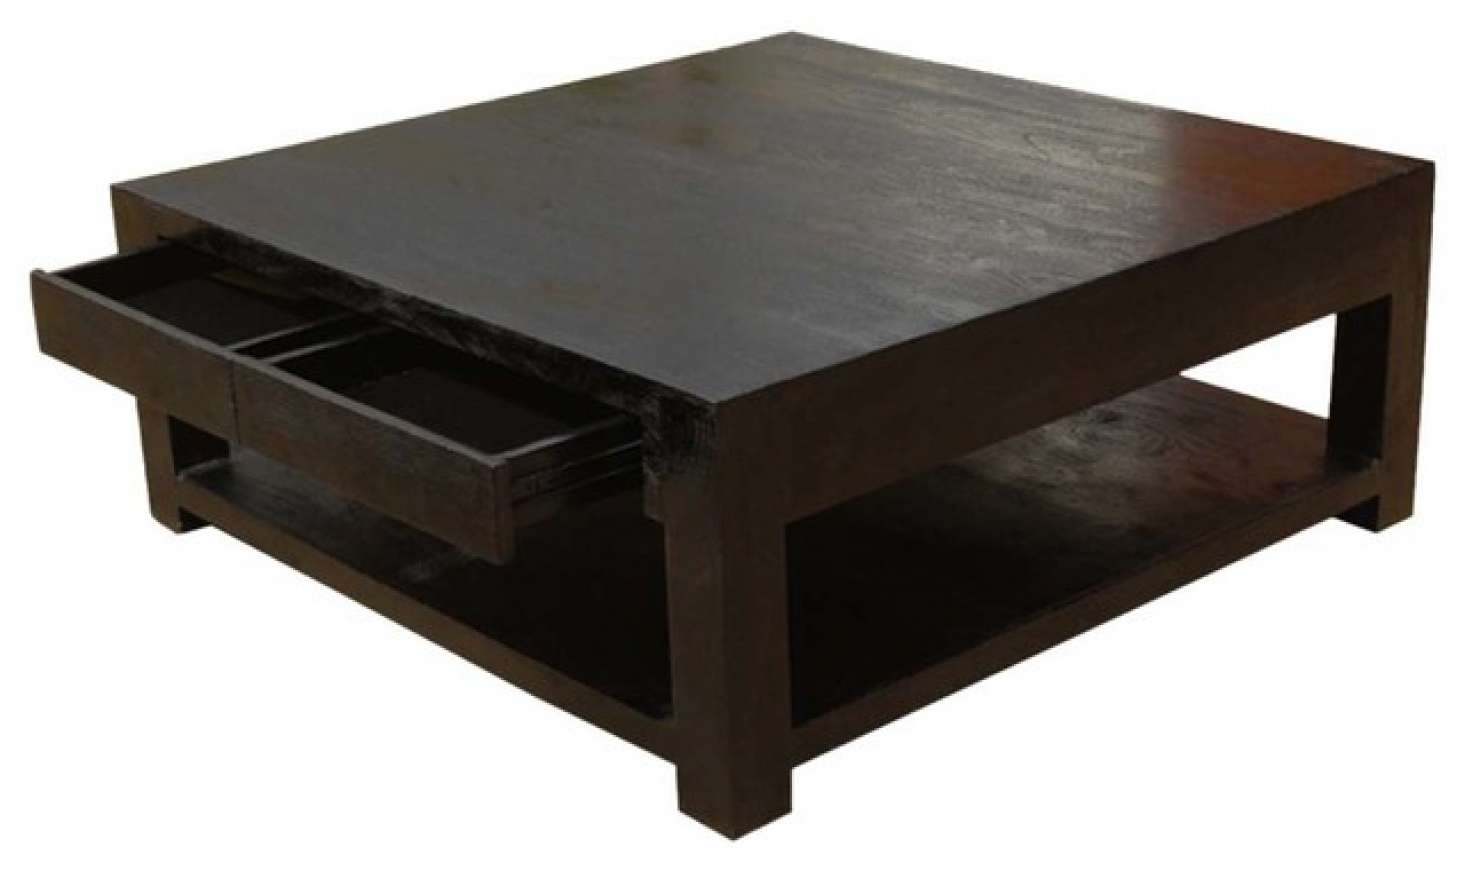 Oversized Square Coffee Tables For Newest Square Coffee Tables (Gallery 5 of 20)